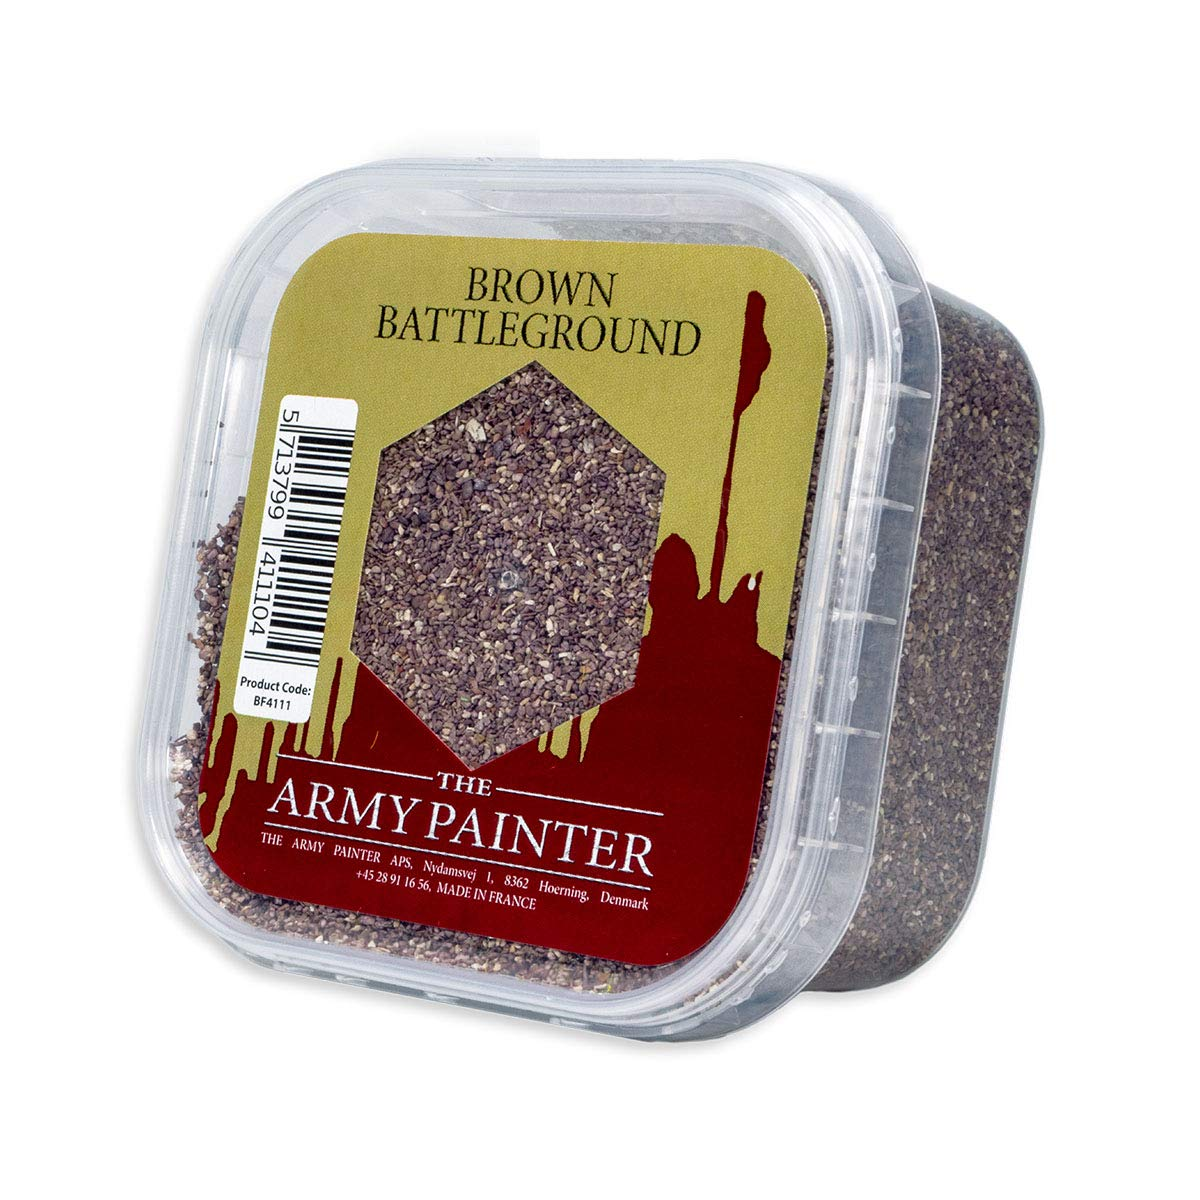 The Army Painter Basing: Brown Battleground - Miniature Models Bases for a Realistic Look